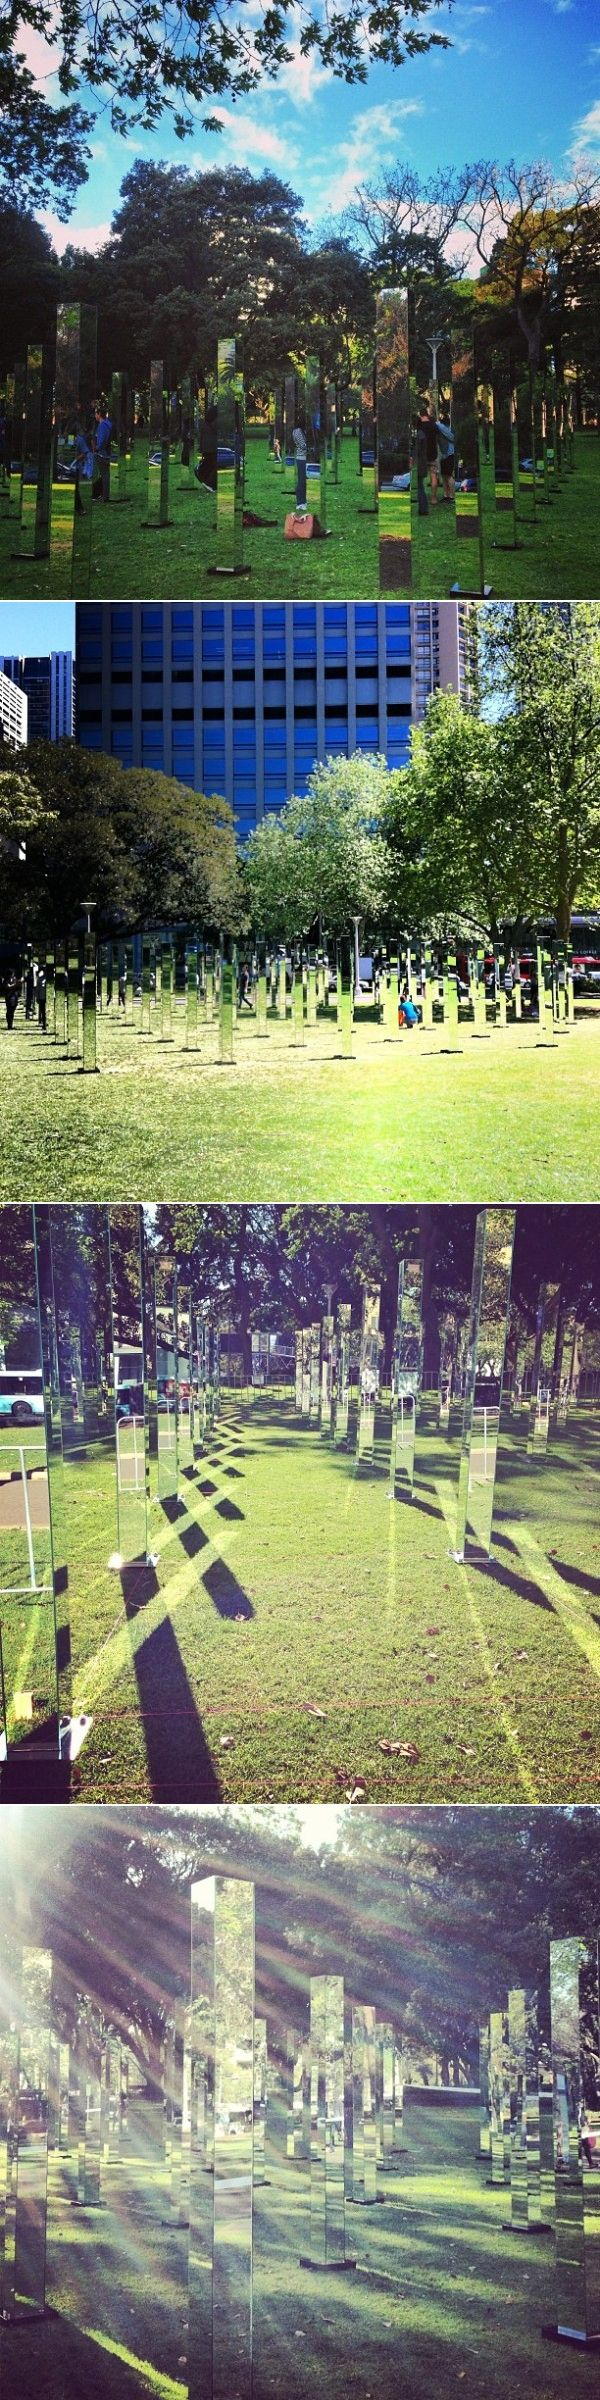 Maze Of Mirrors In A Sydney Park